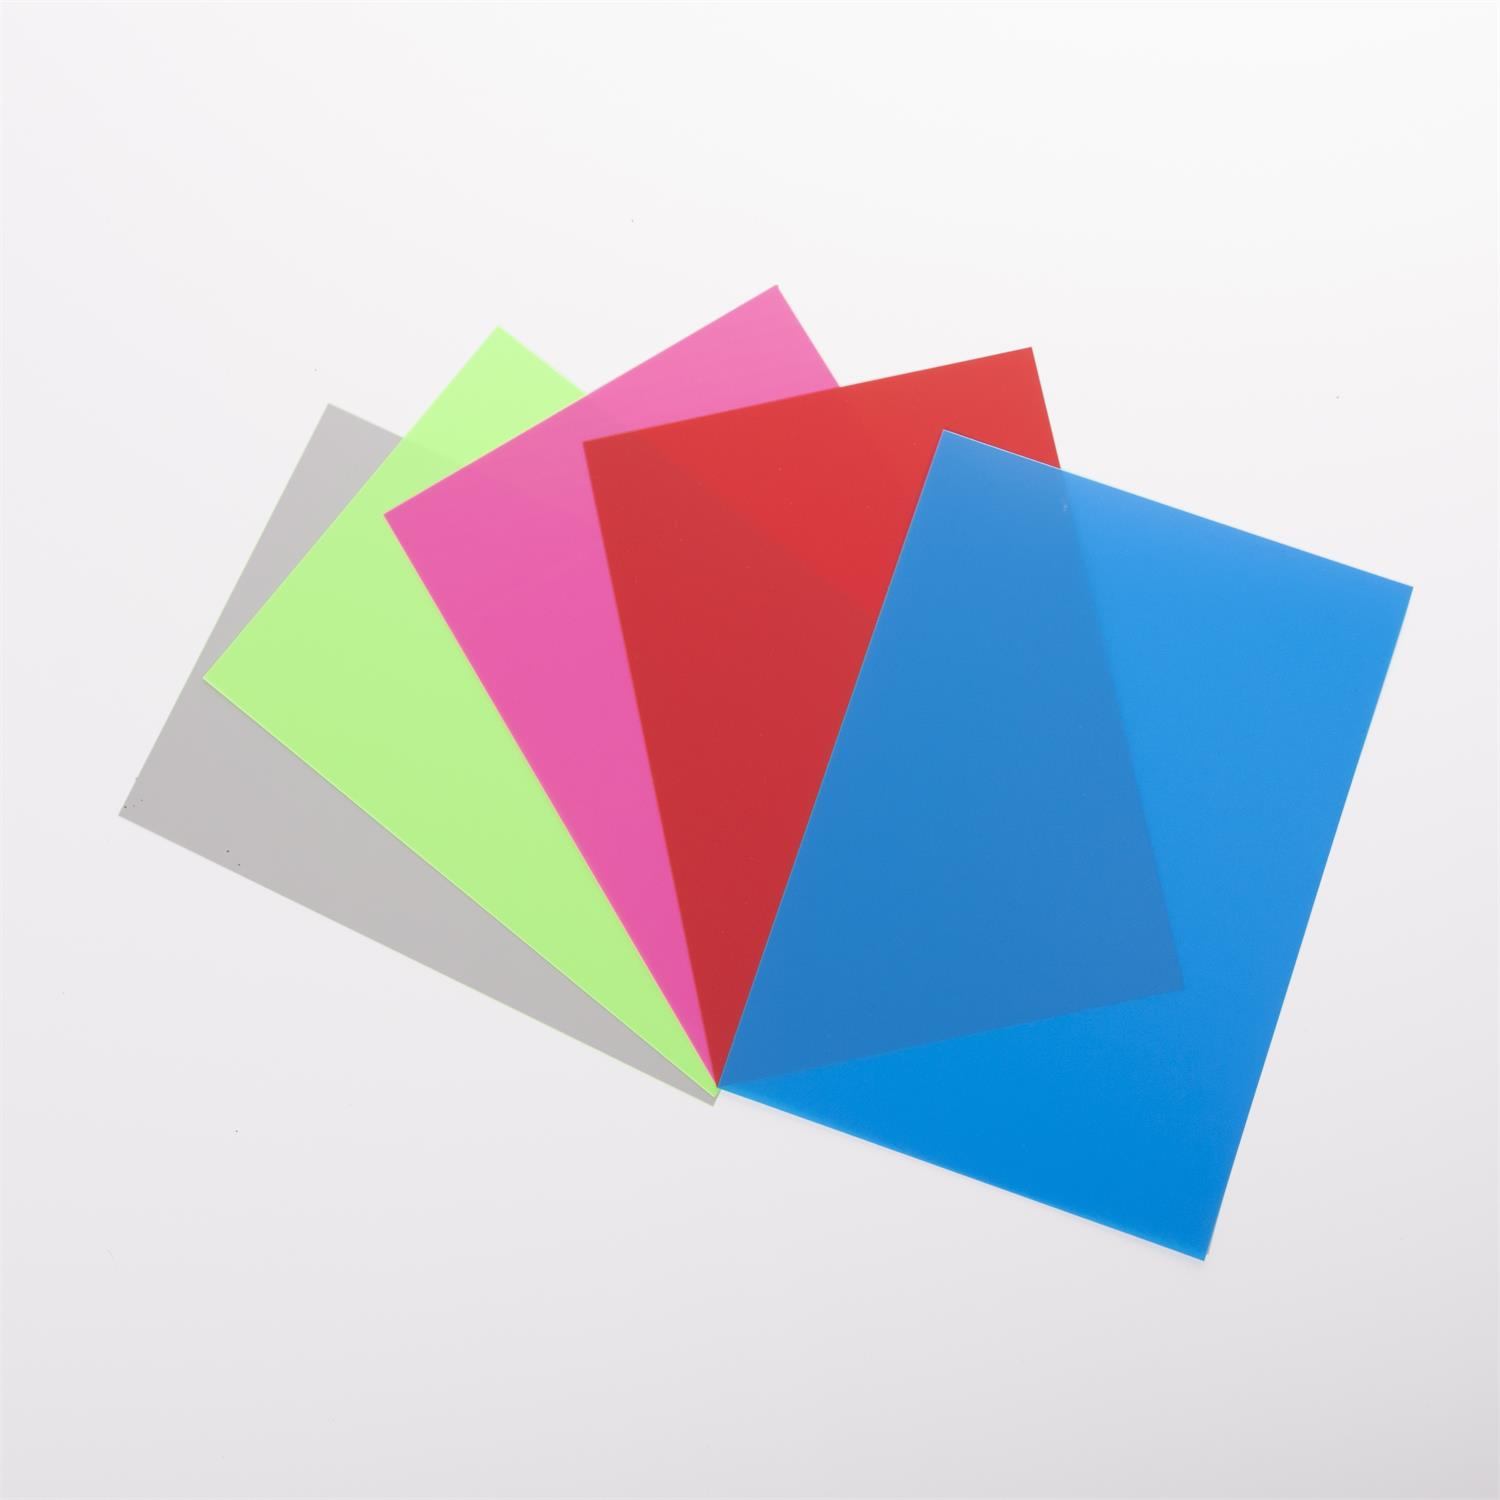 frosted polypropylene sheet for notebook cover